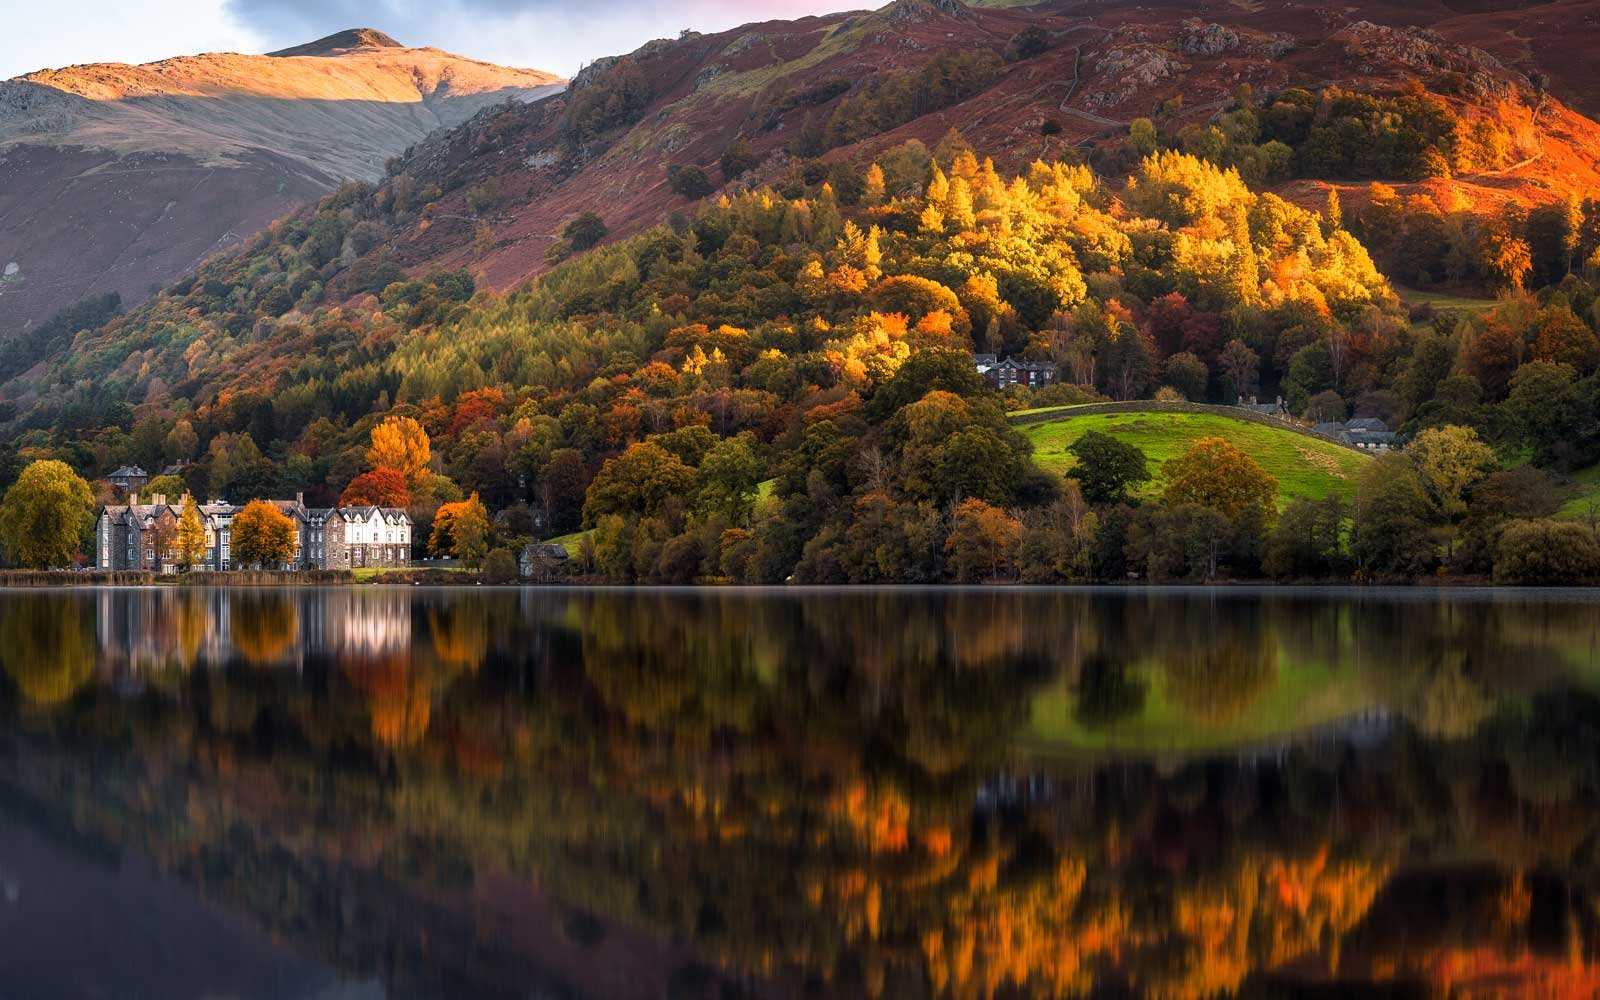 Stop into locations like Lake Grasmere in the English Lake District for a relaxing getaway.